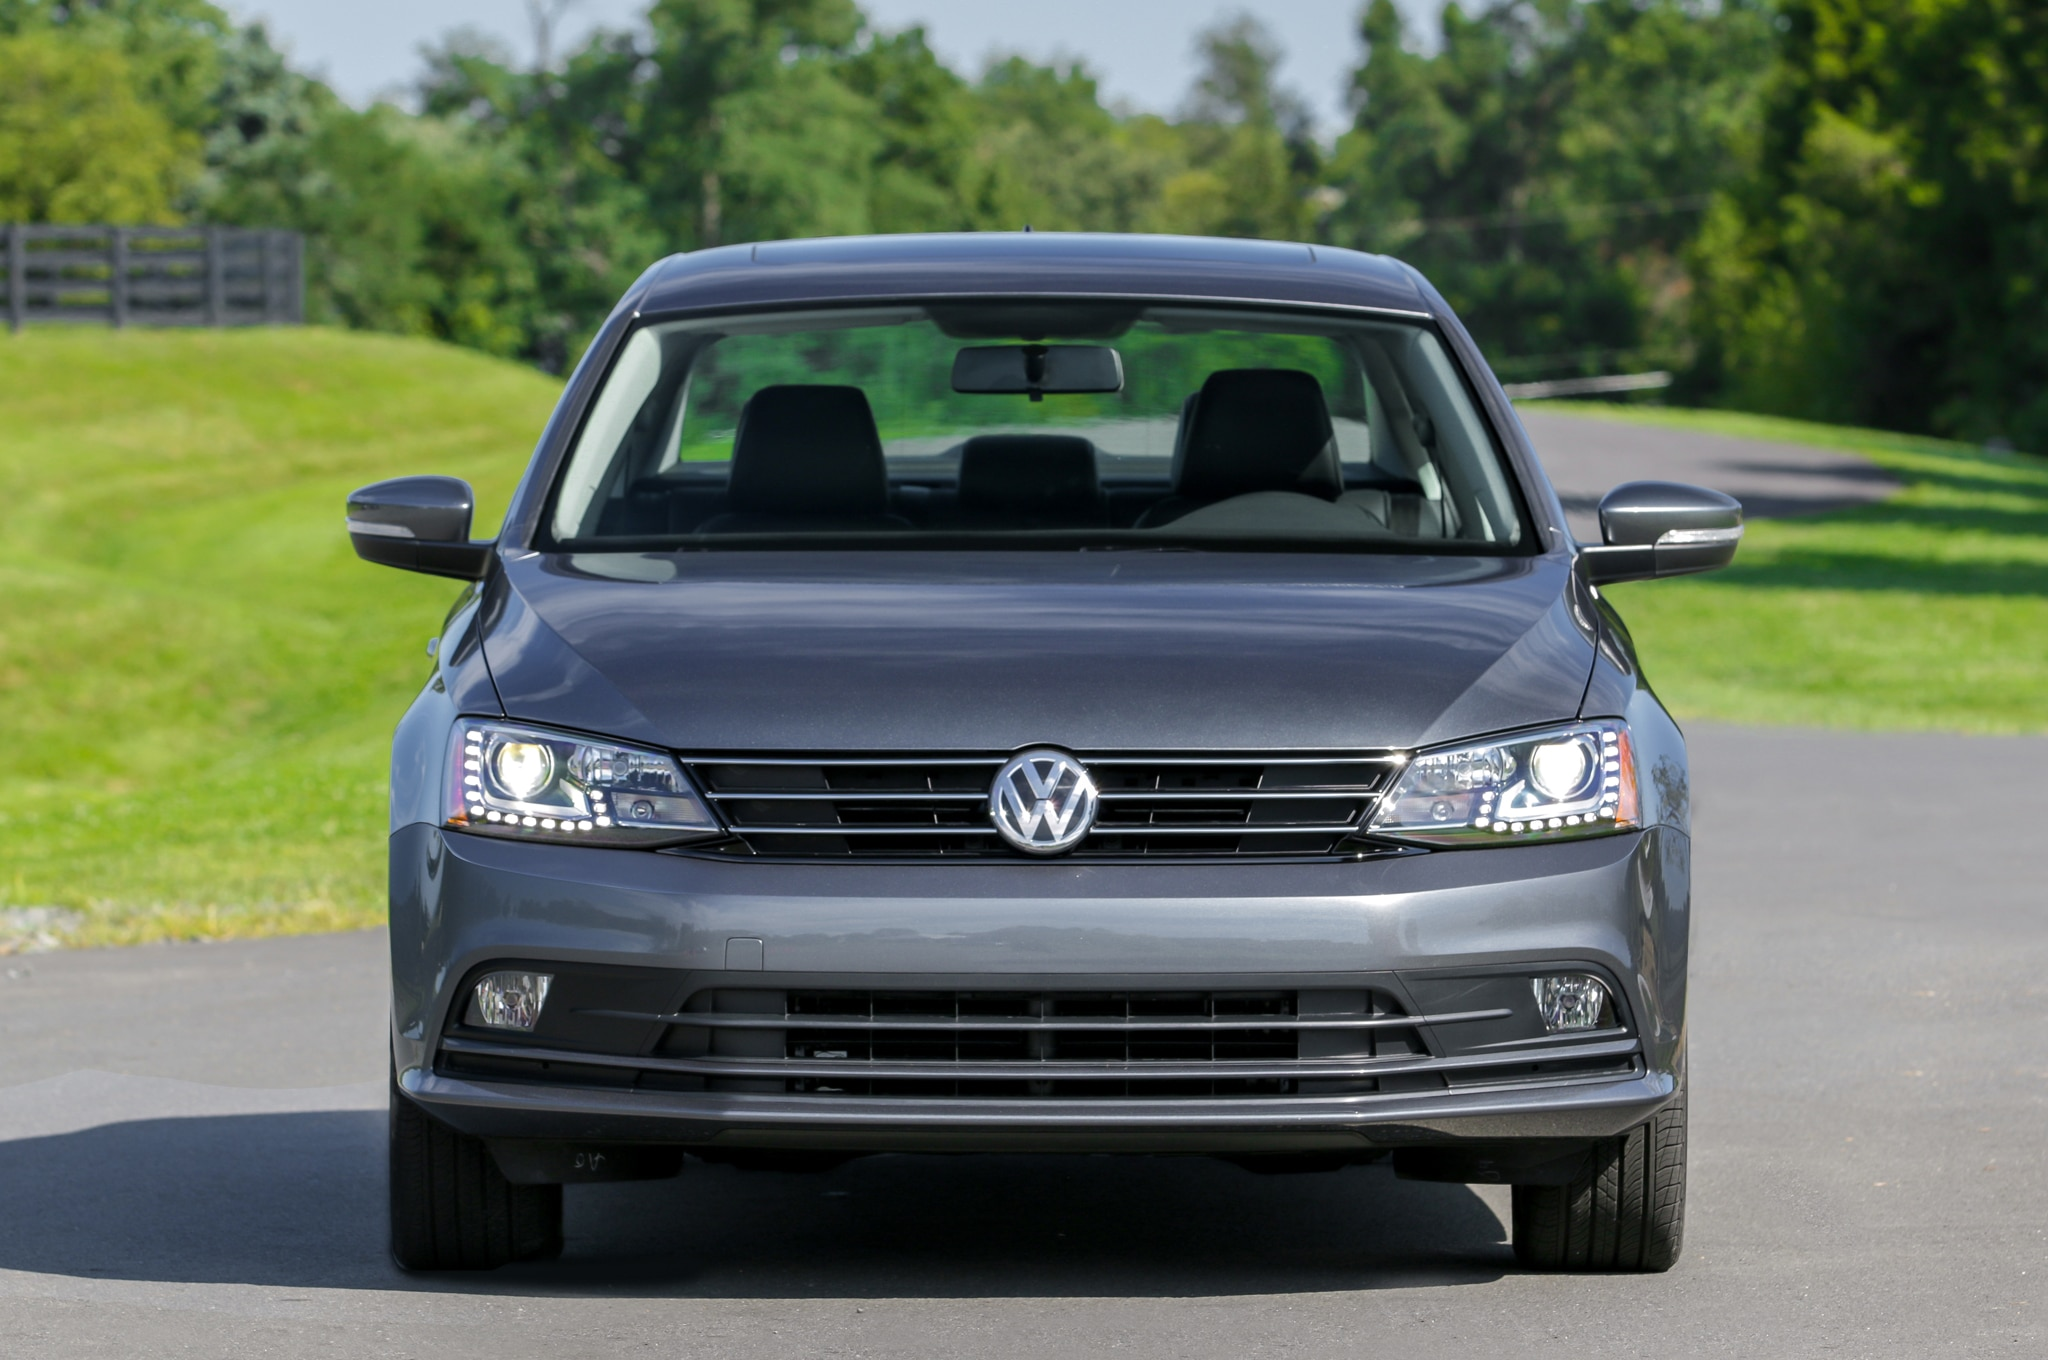 2016 volkswagen jetta 1 4t rated at up to 40 mpg. Black Bedroom Furniture Sets. Home Design Ideas